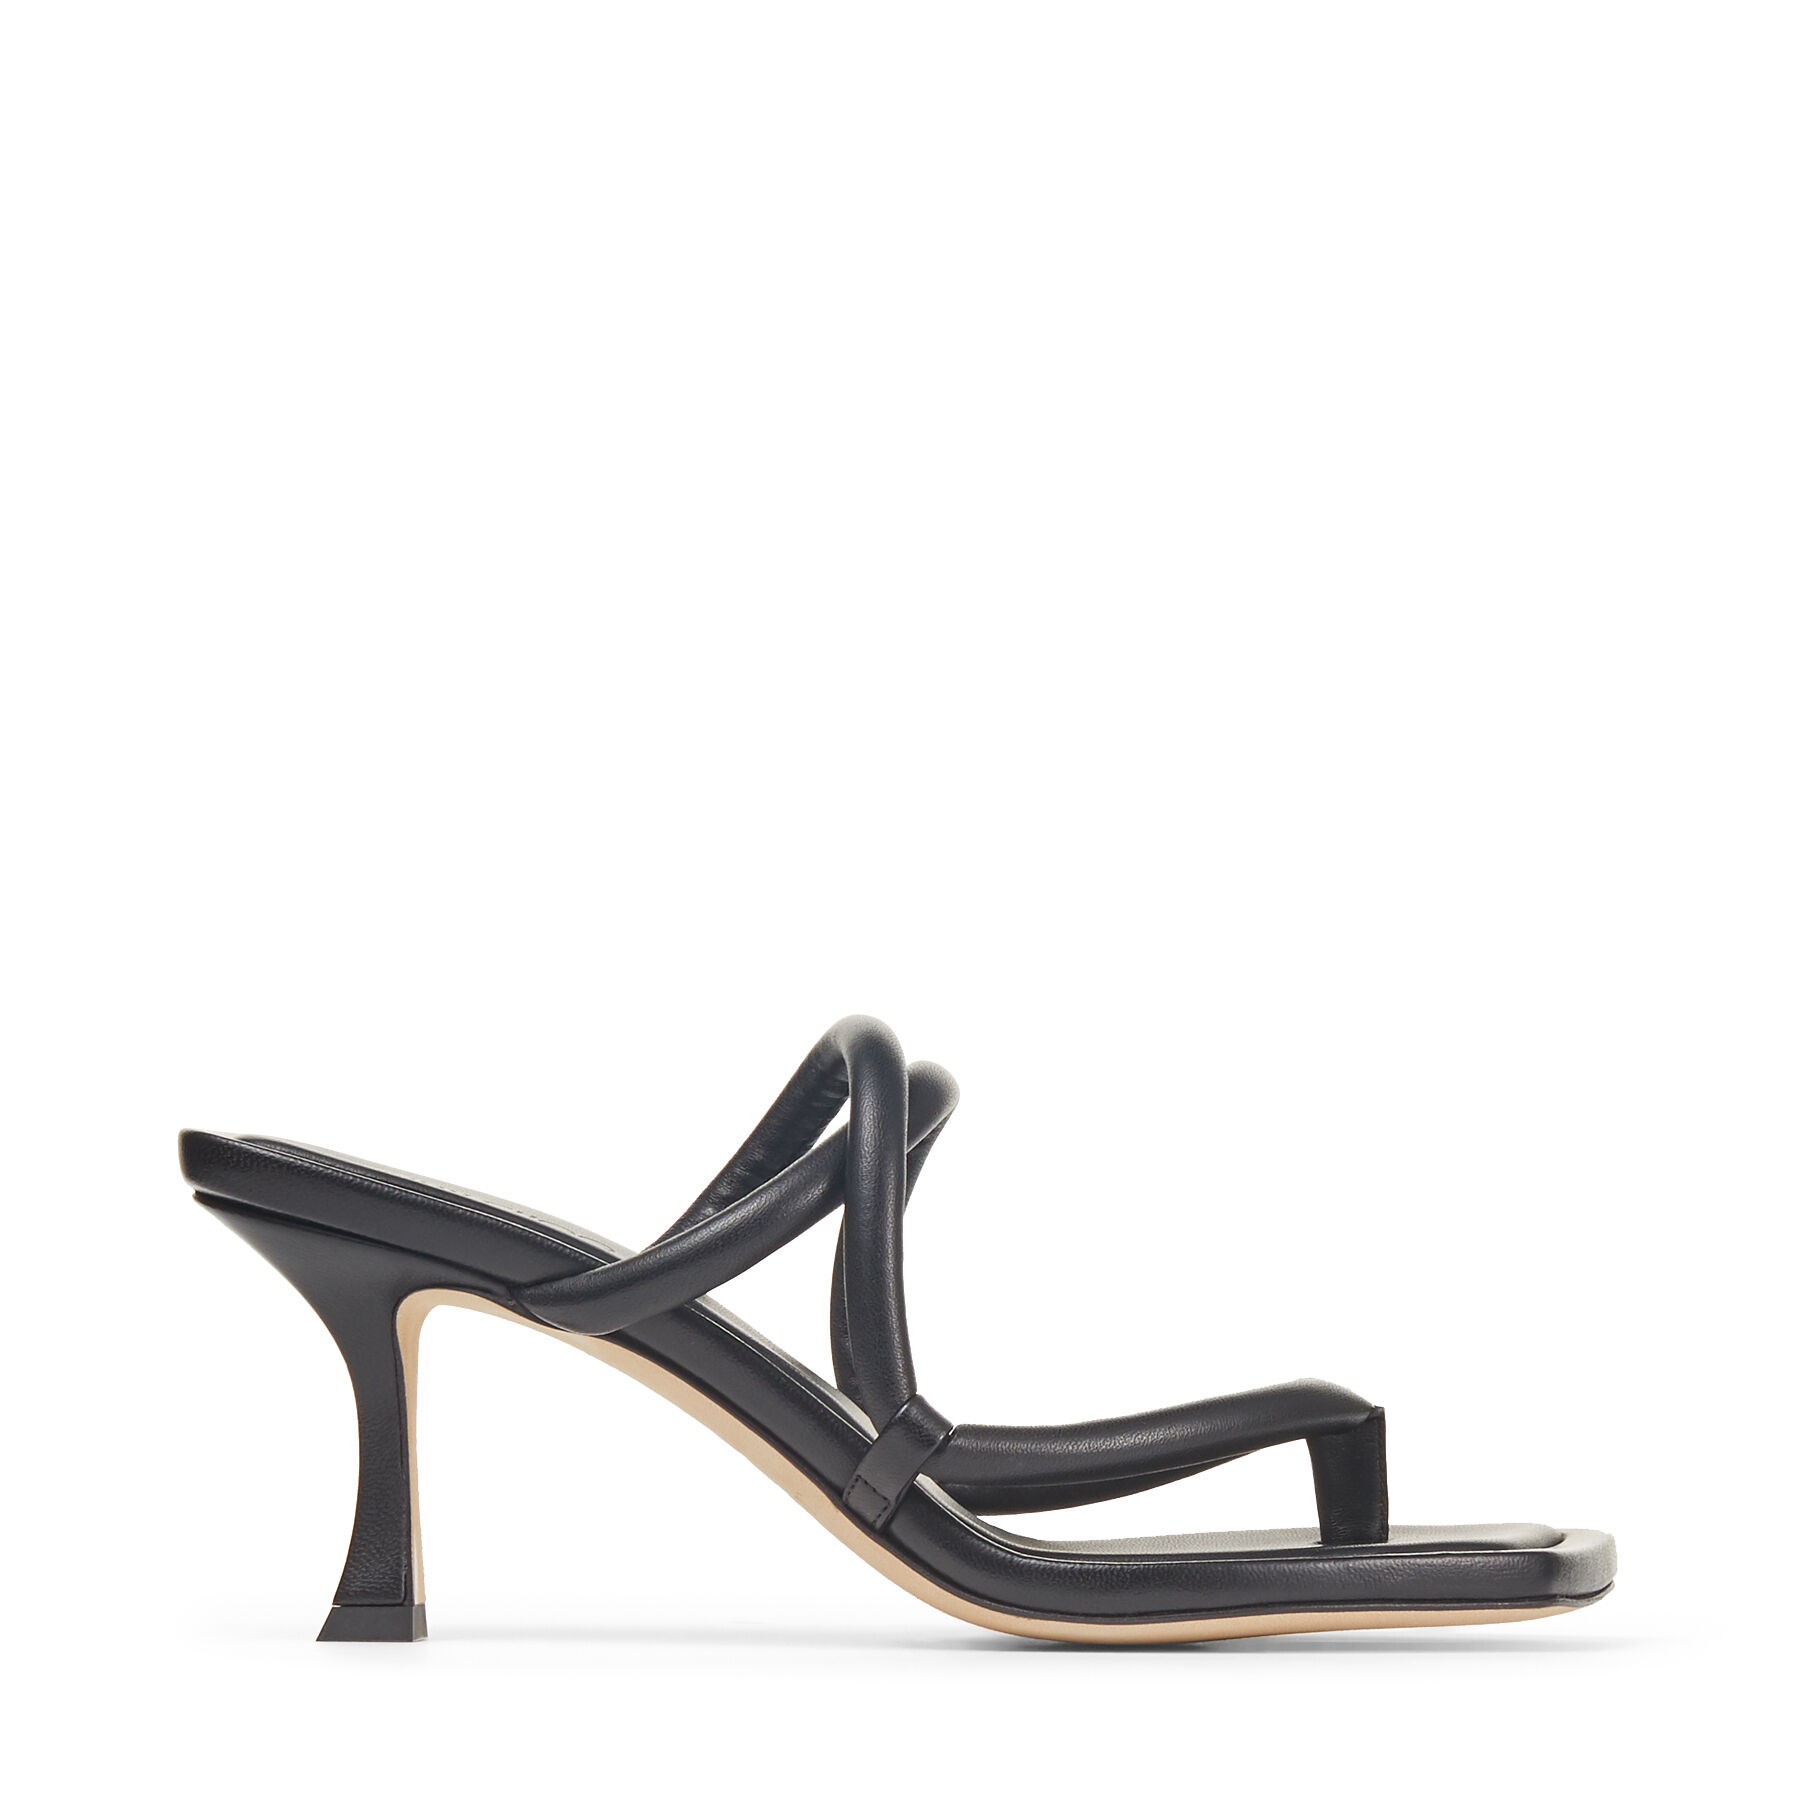 CAPE 70 - Black Nappa Leather Thong Mules